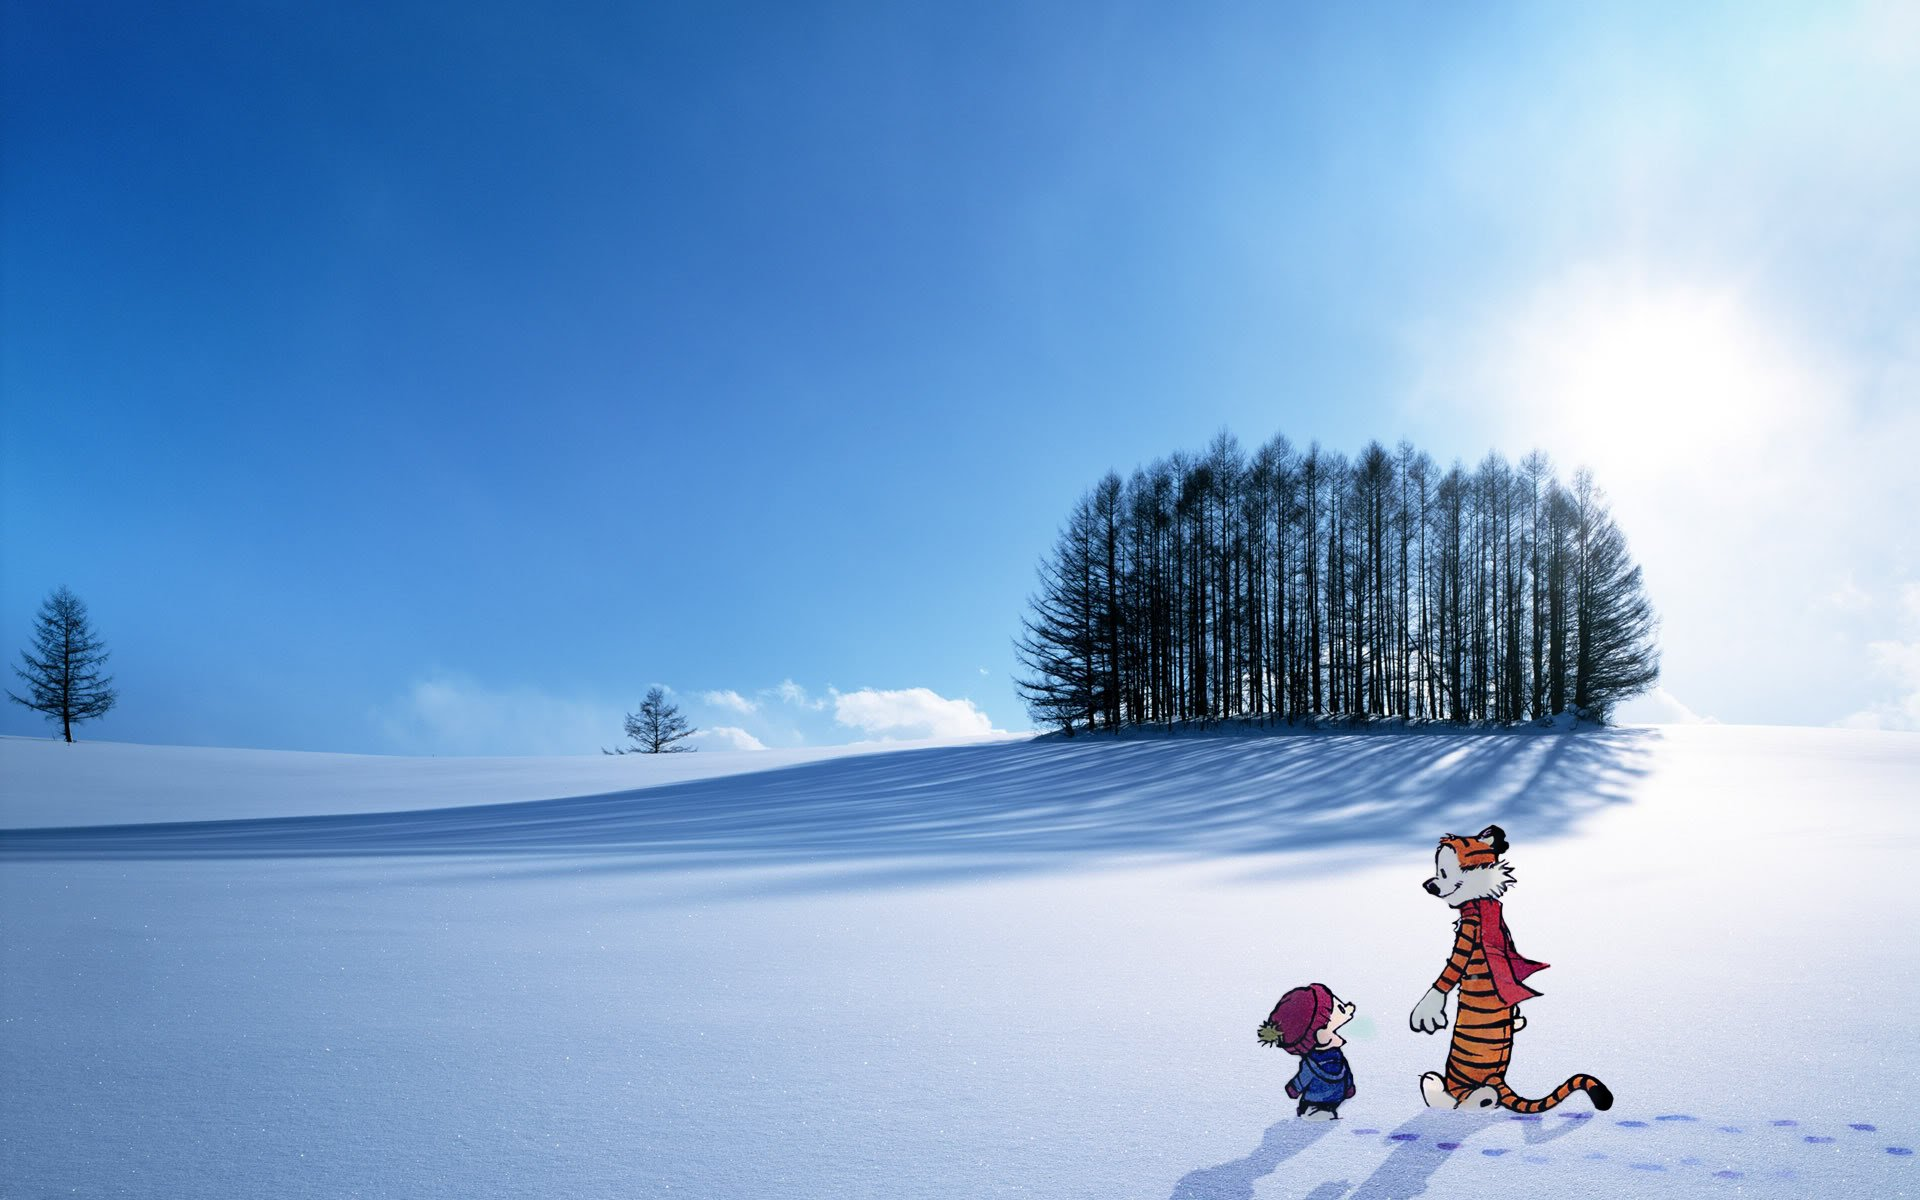 Hobbes 4k Wallpapers For Your Desktop Or Mobile Screen Free And